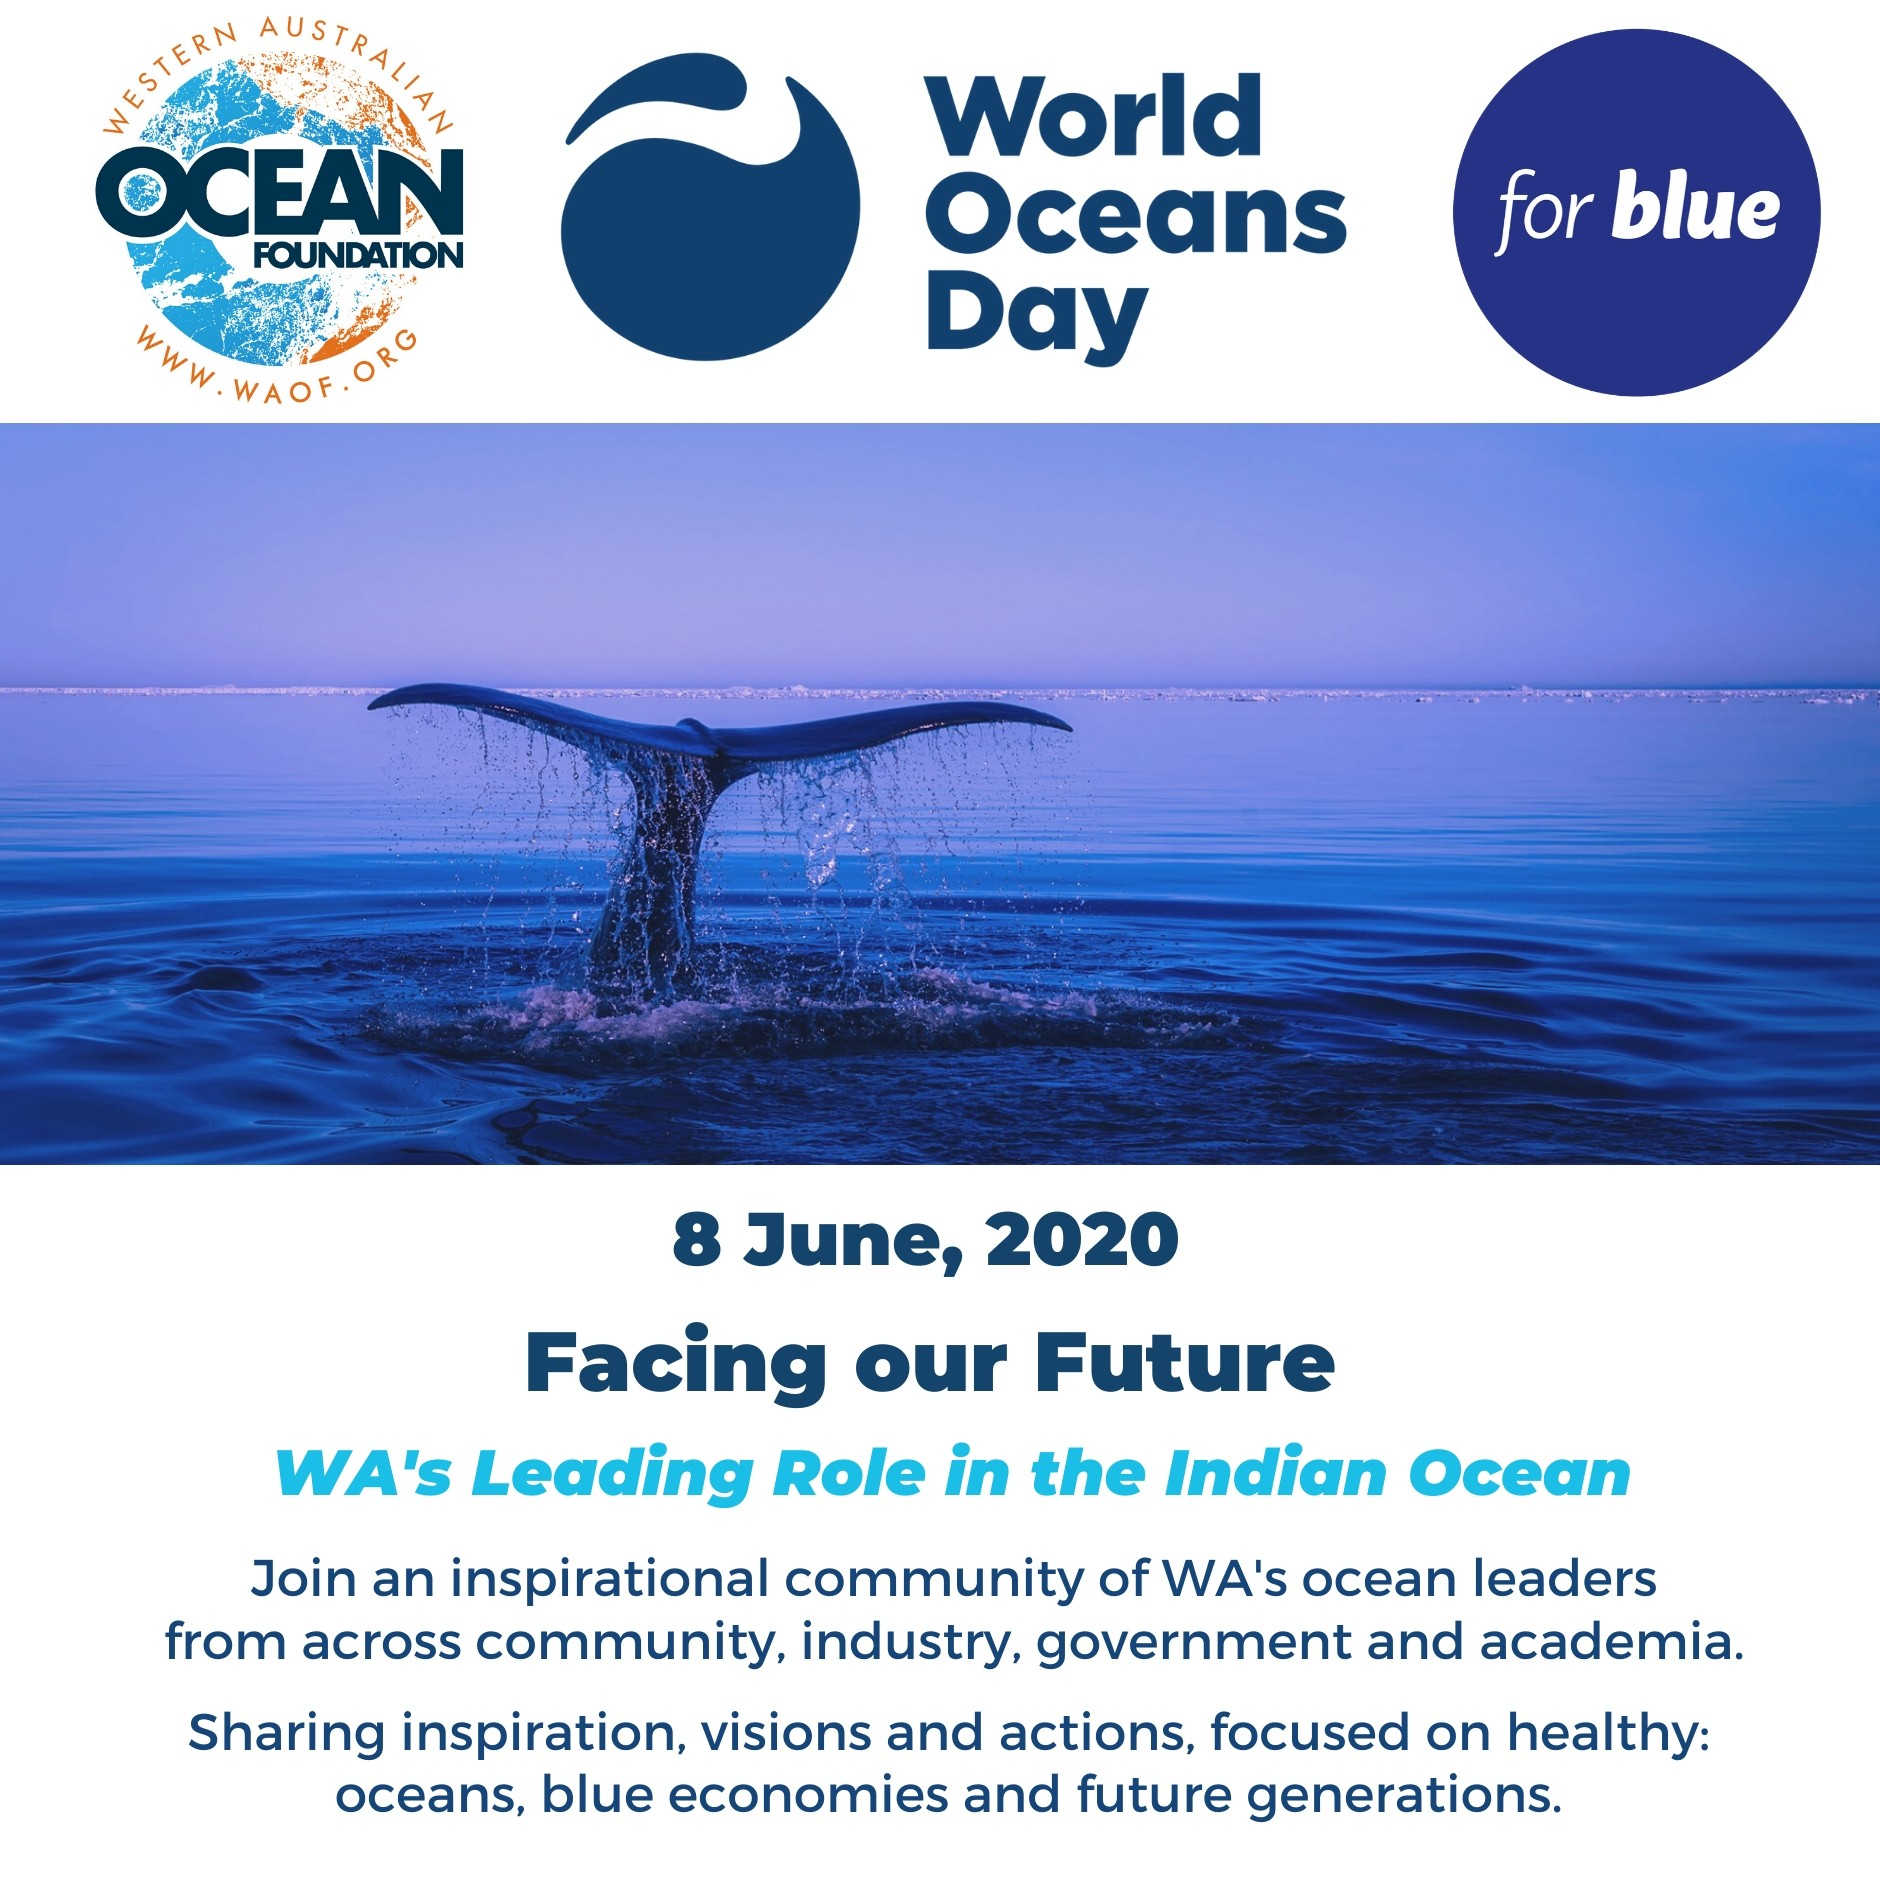 Wold Oceans Day 2020 For Blue